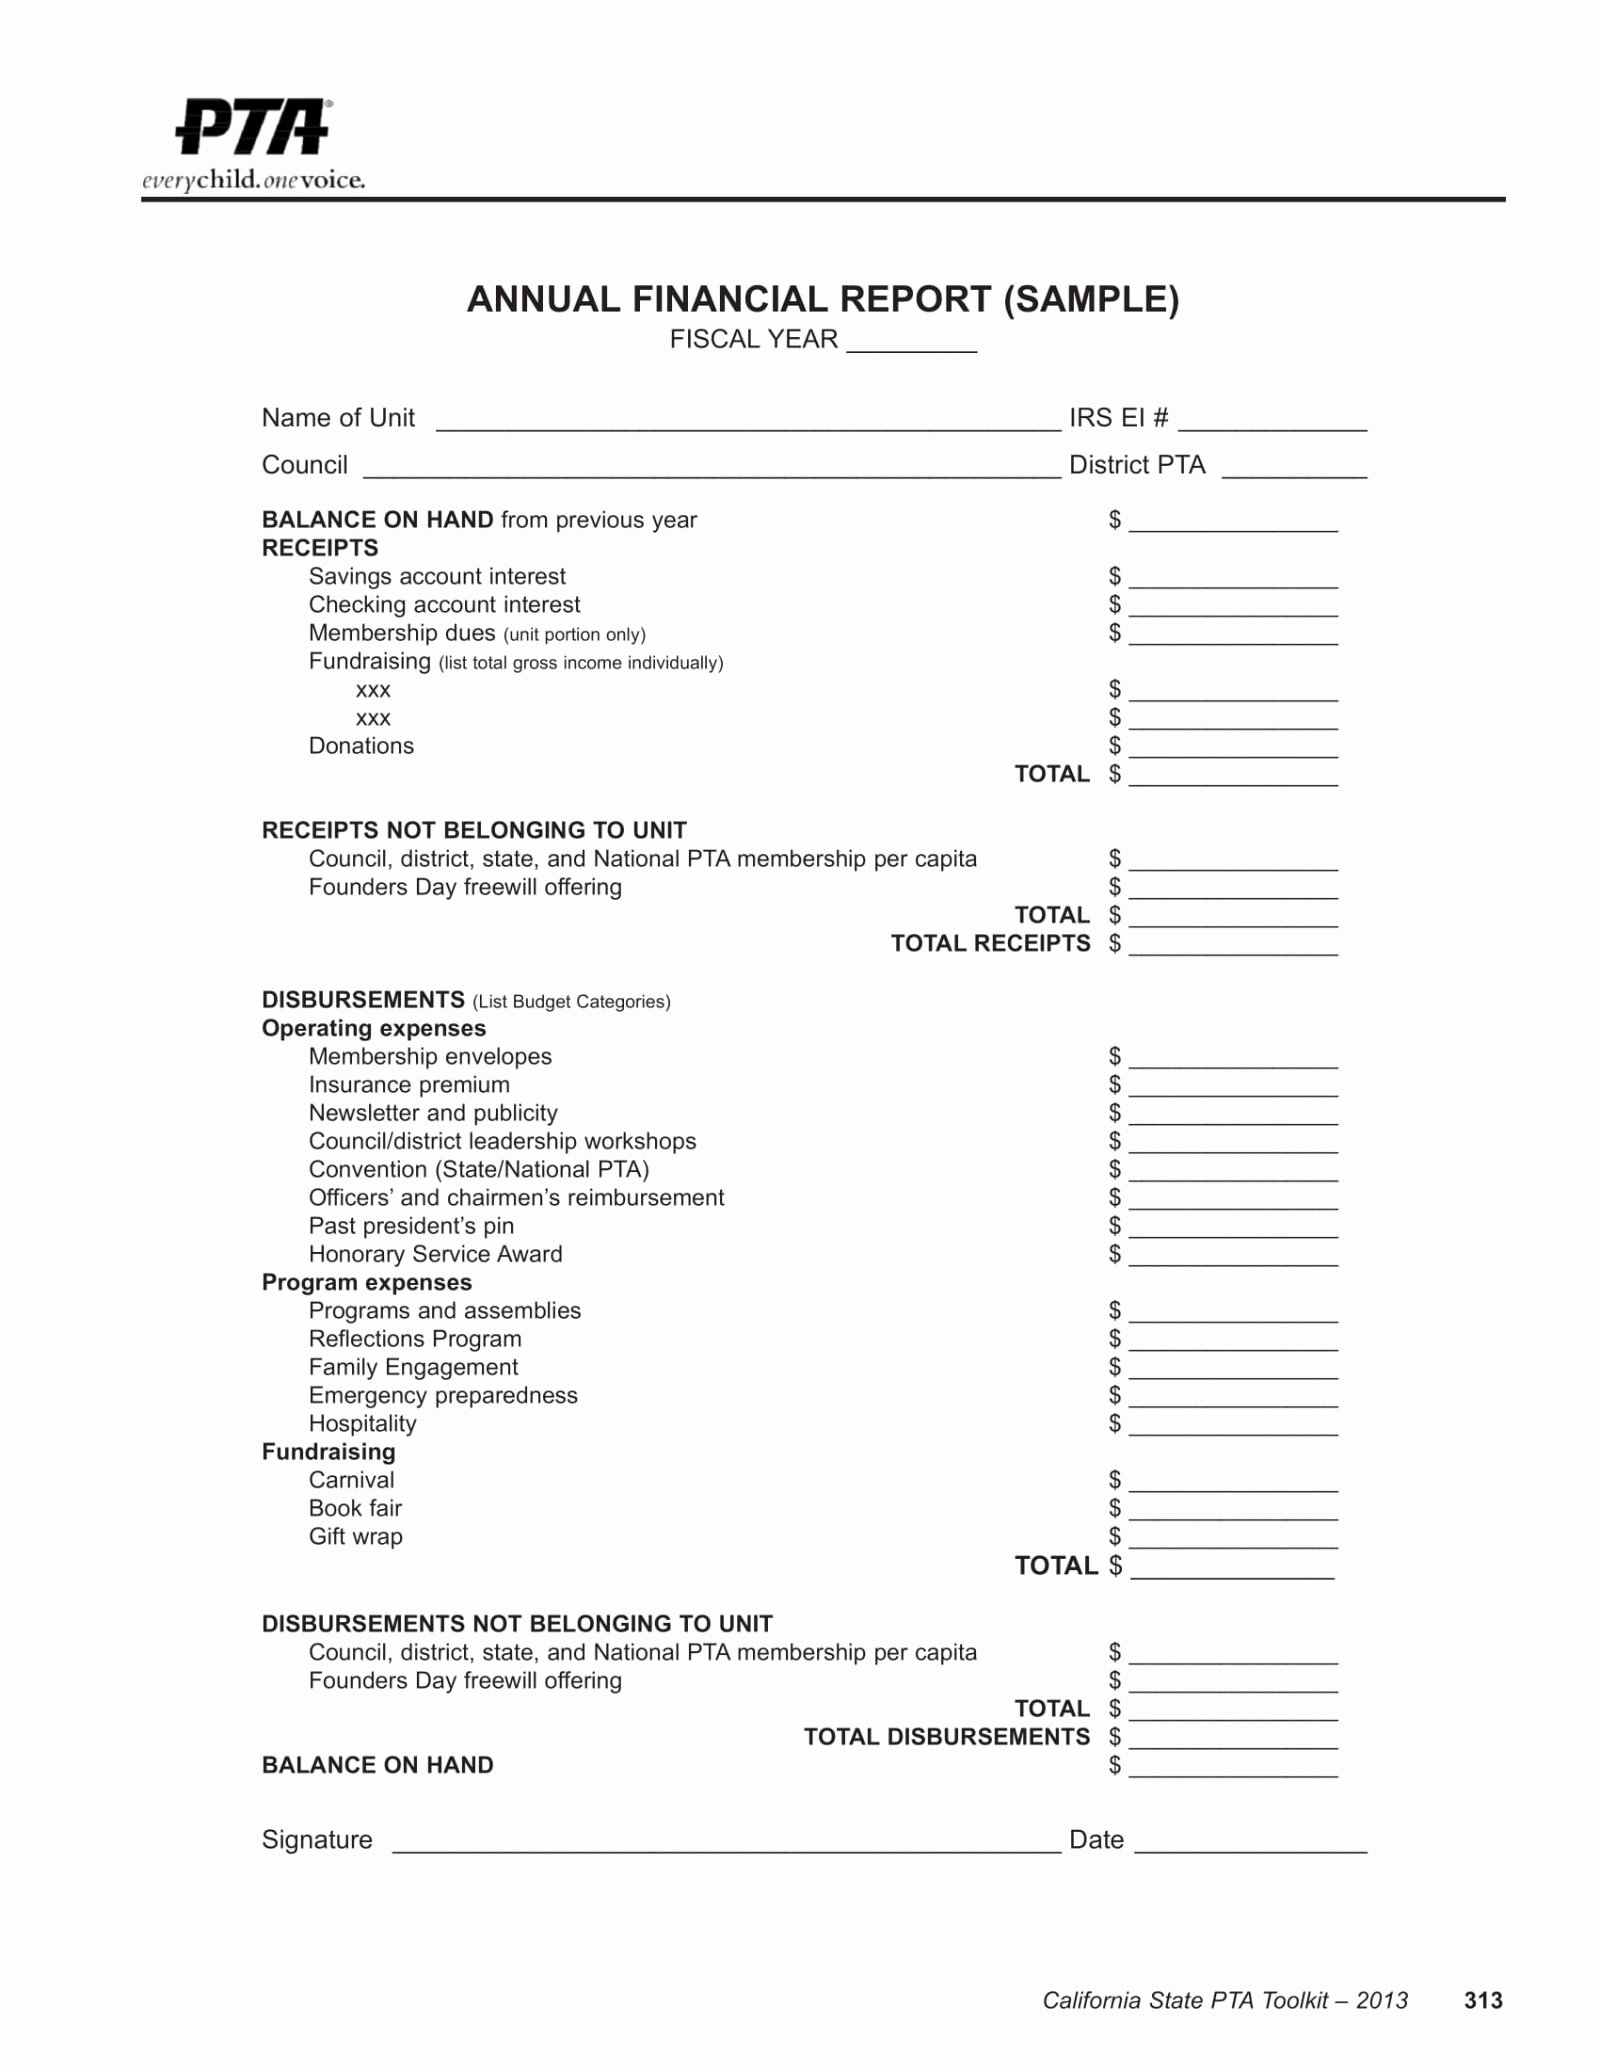 Annual Financial Report Template Lovely Financial Report Example Excel Free Churchemplatesemplate